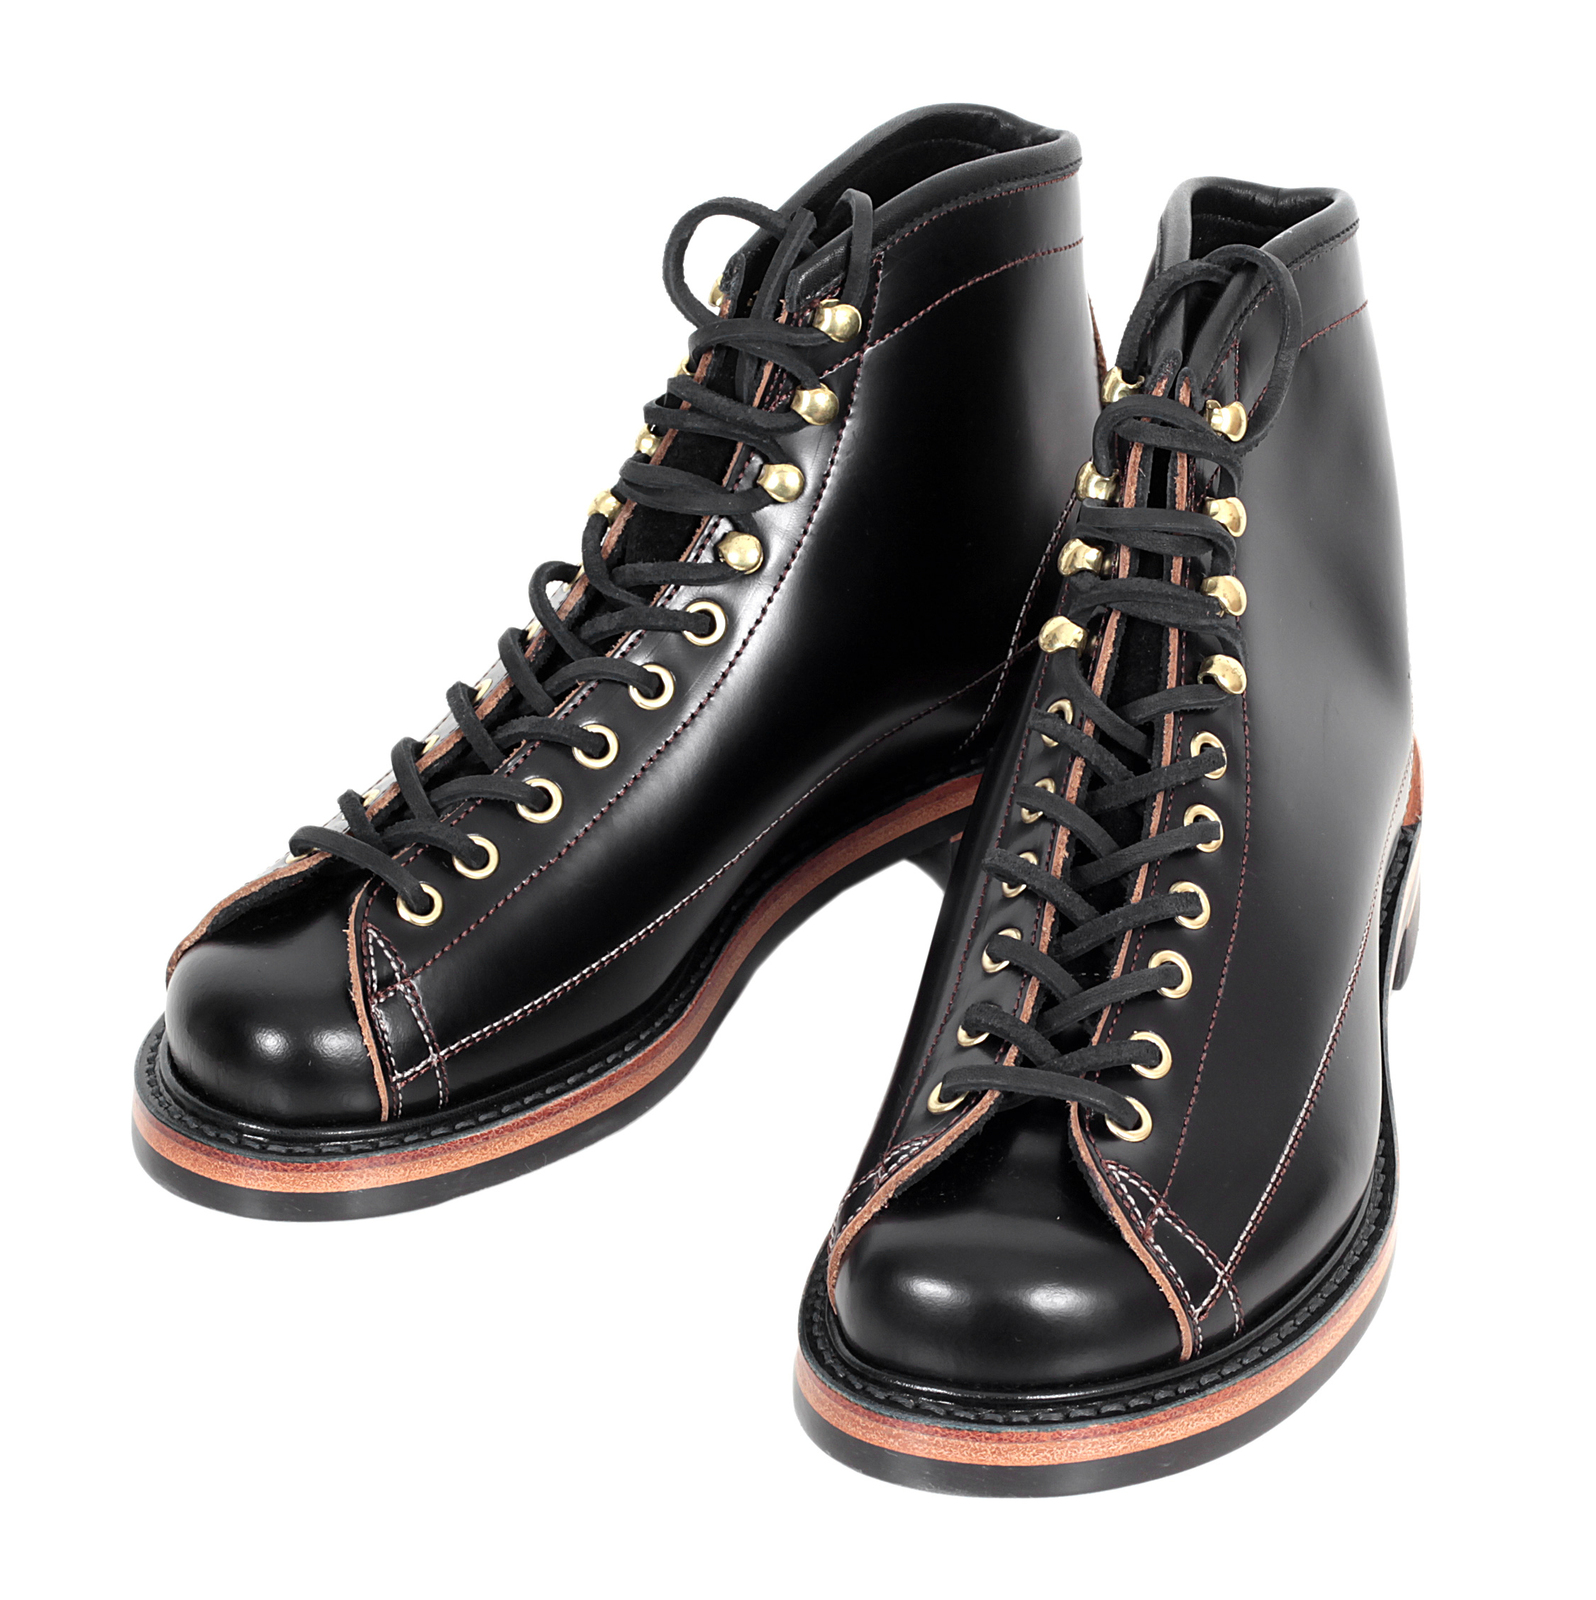 Buy Incredibly Stylish Black Leather Boots By Lone Wolf